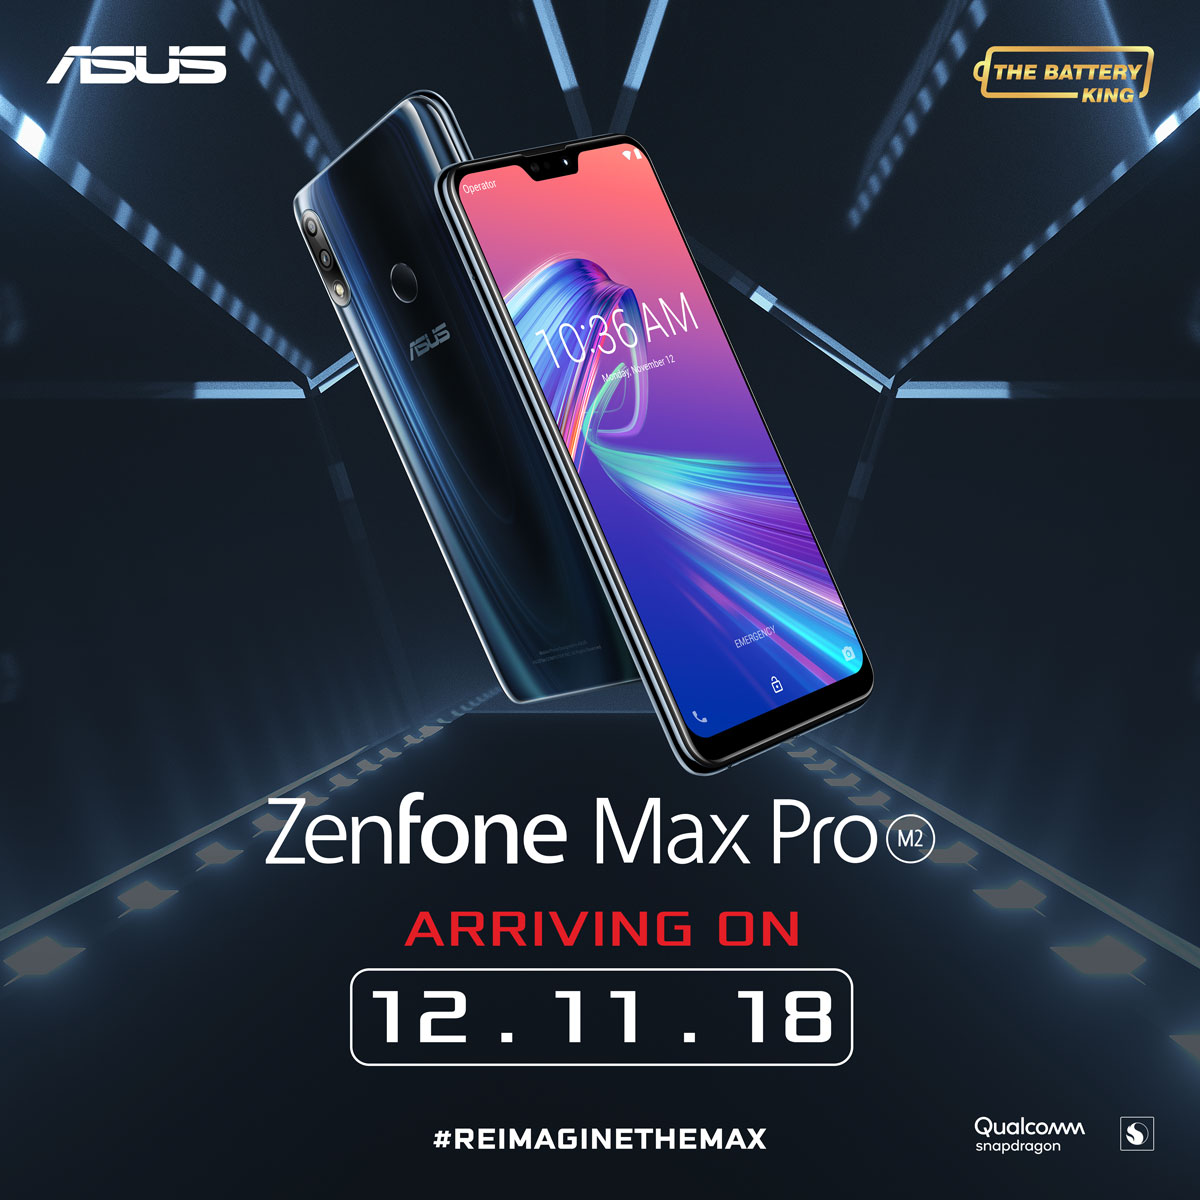 asus zenfone max pro m2, ASUS ZenFone Max Pro M2 Launching in PH on December 11!, Gadget Pilipinas, Gadget Pilipinas